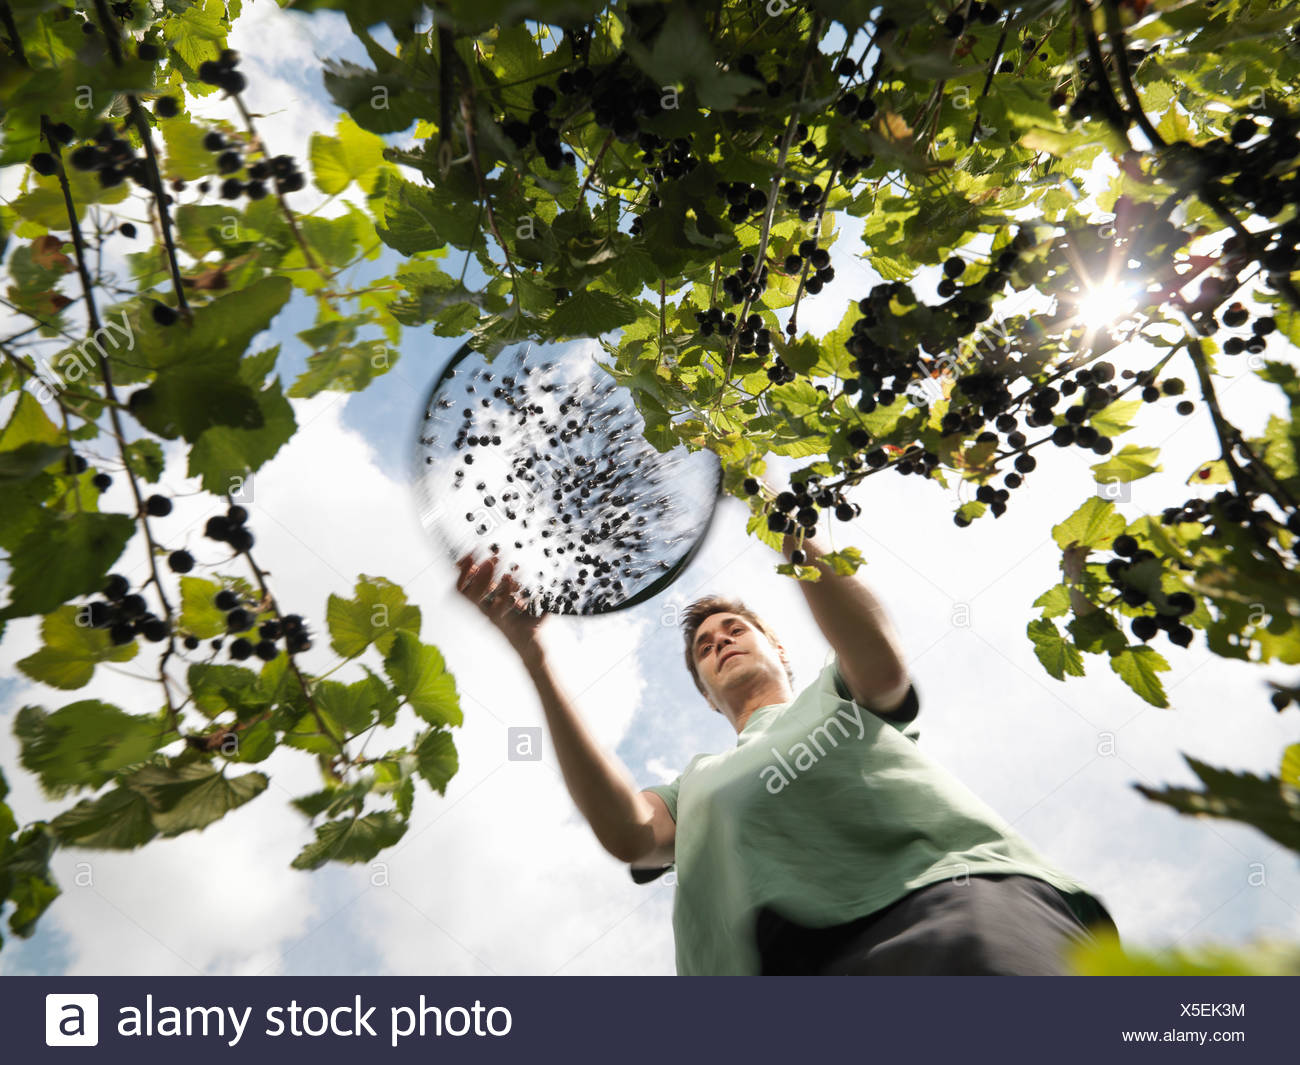 Man Harvesting Blackcurrants - Stock Image